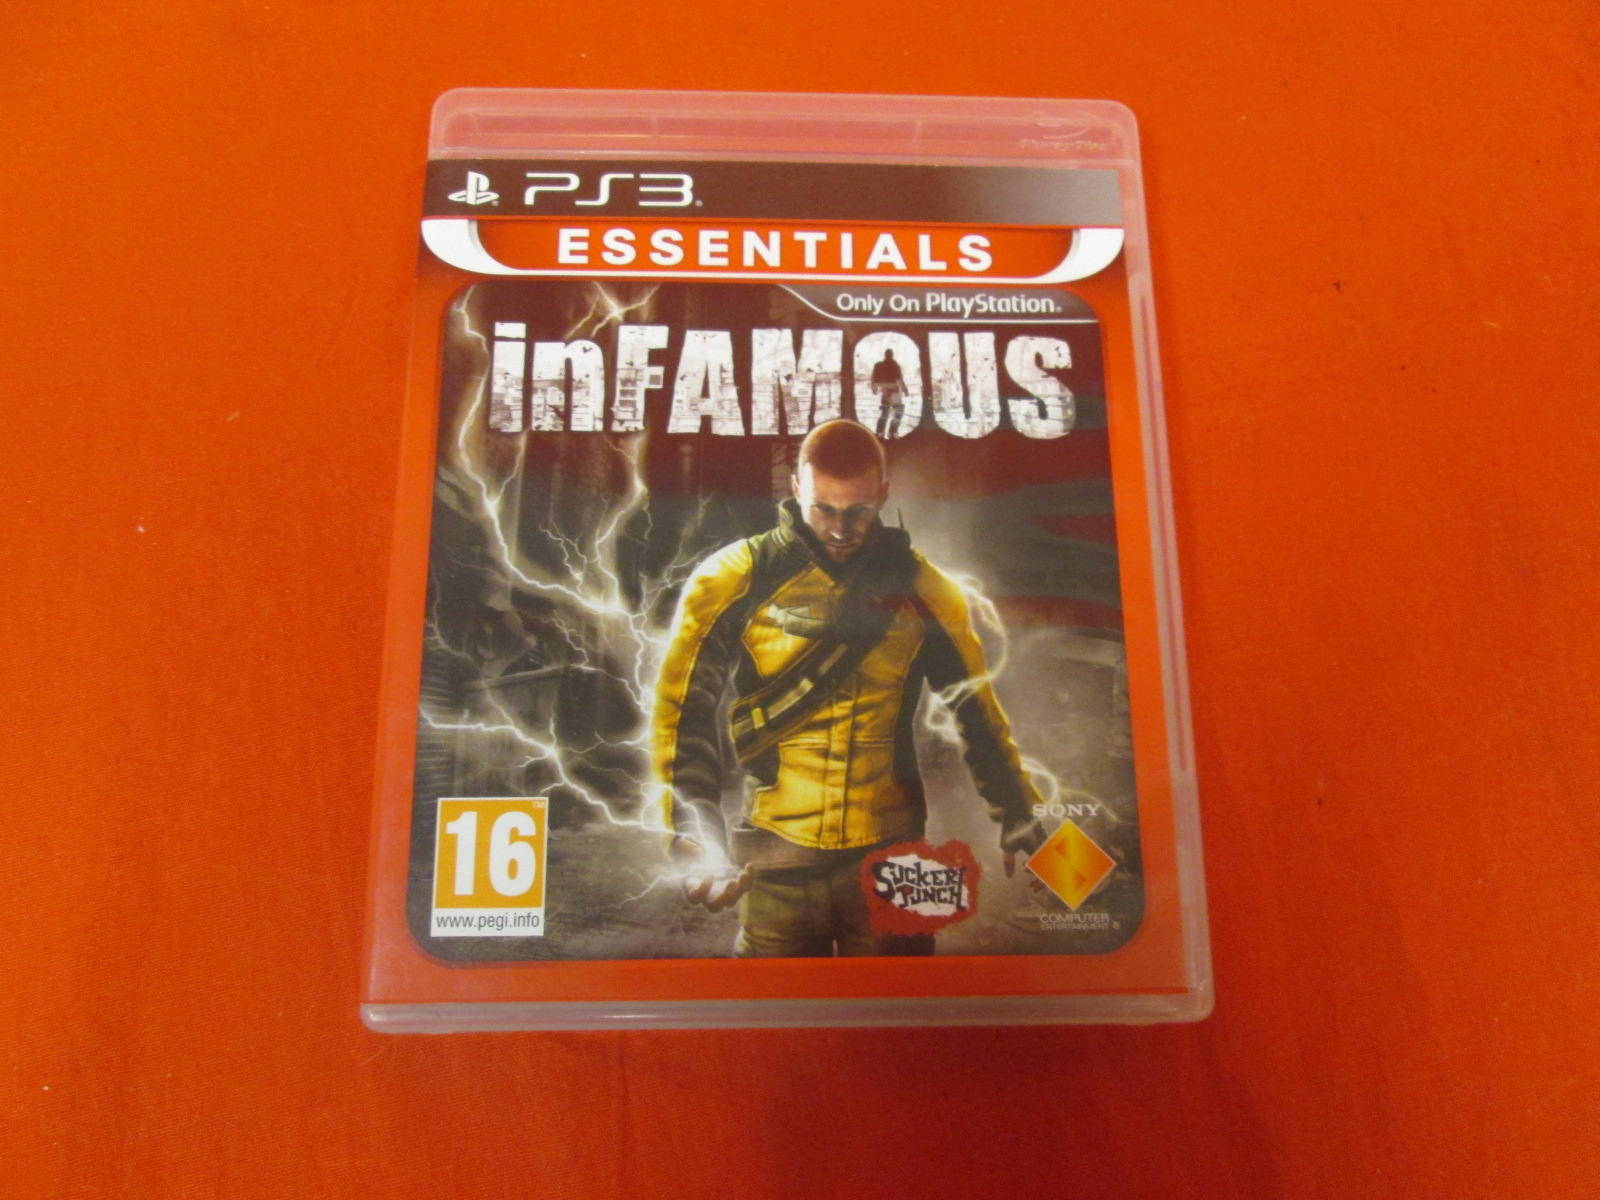 Infamous Essentials PS3 For PlayStation 3 PAL Version With Manual and